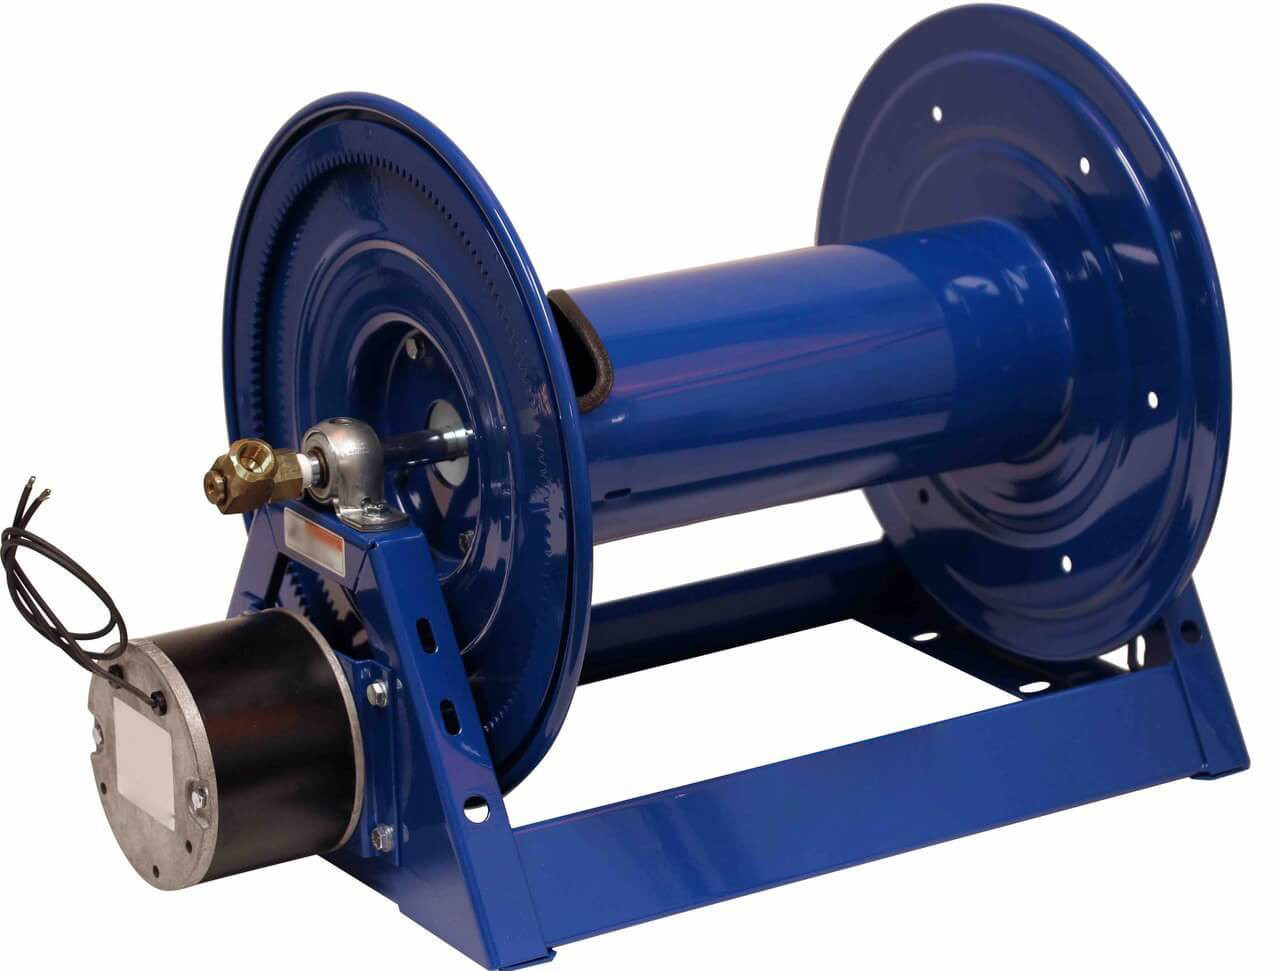 Hoses Business & Industrial COXREELS 1125-4-325-A-BYXX Compressed ...